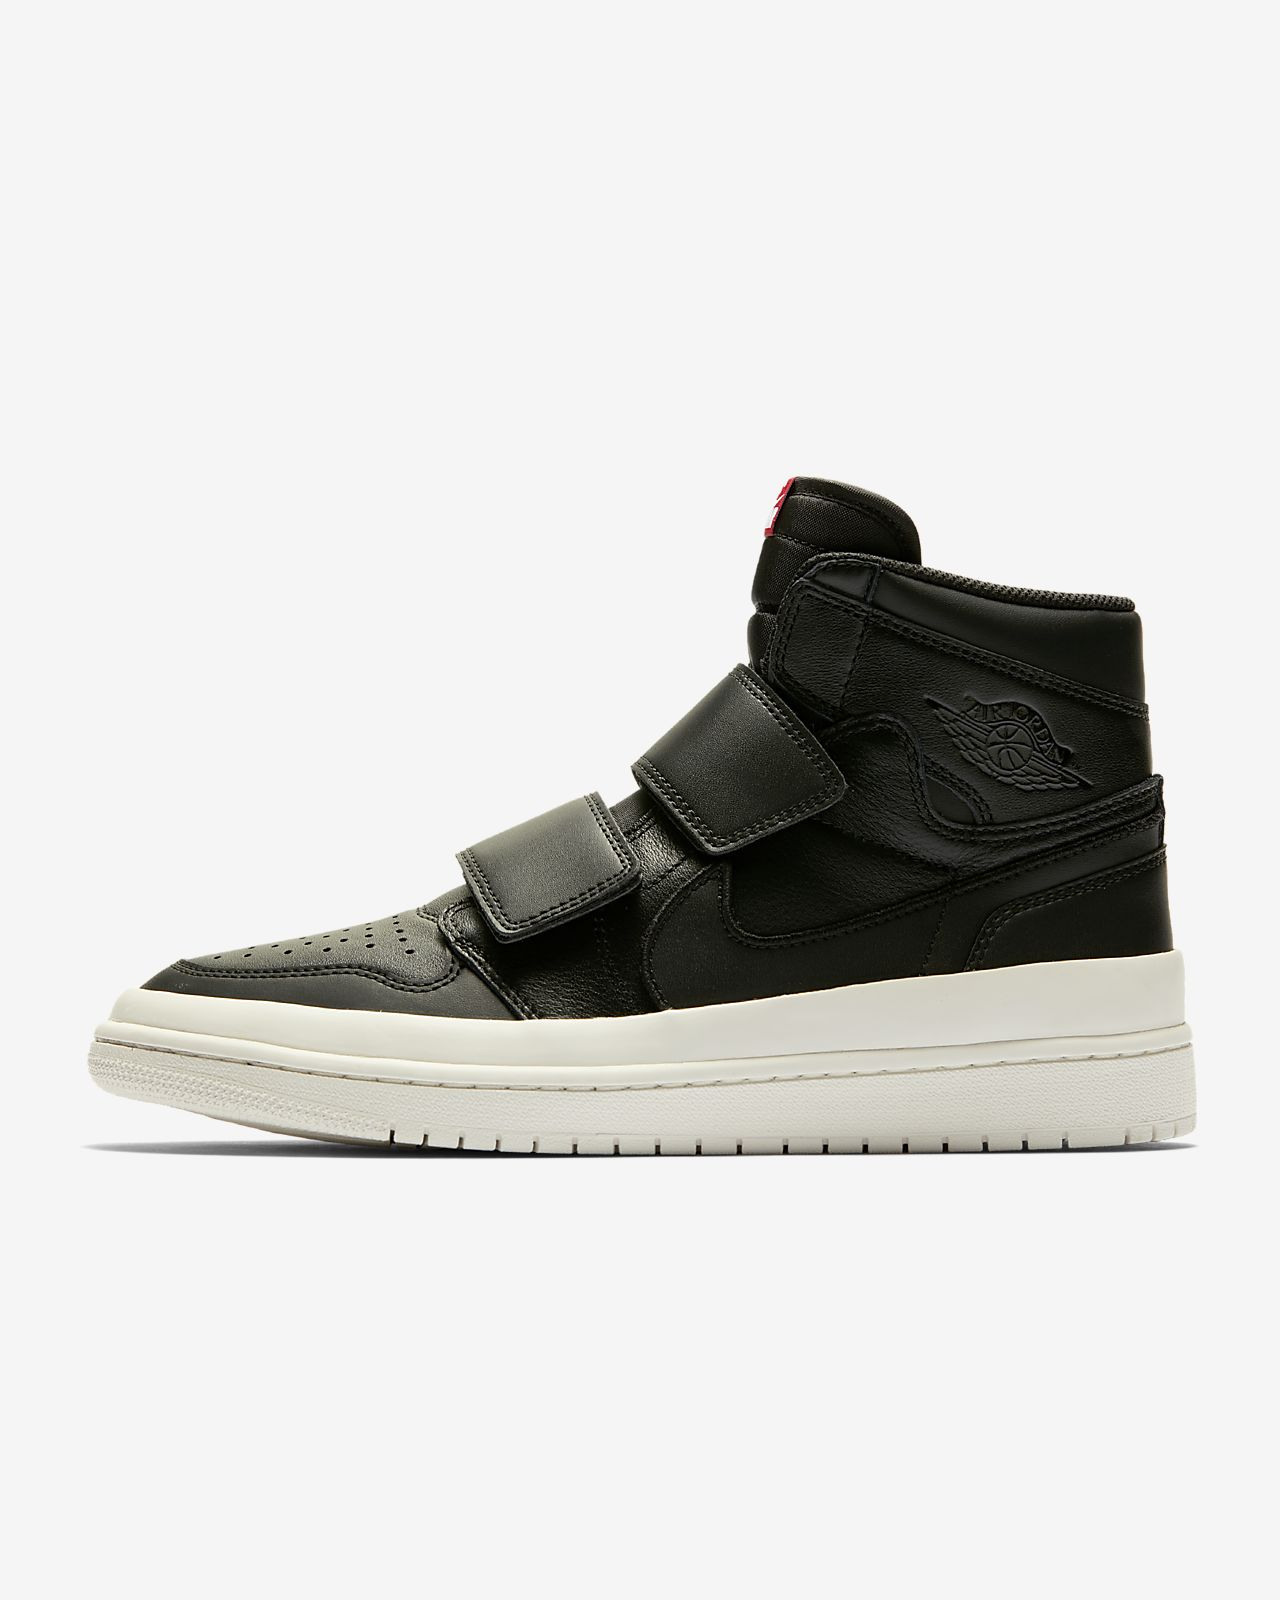 Sko Air Jordan 1 Retro High Double Strap för män